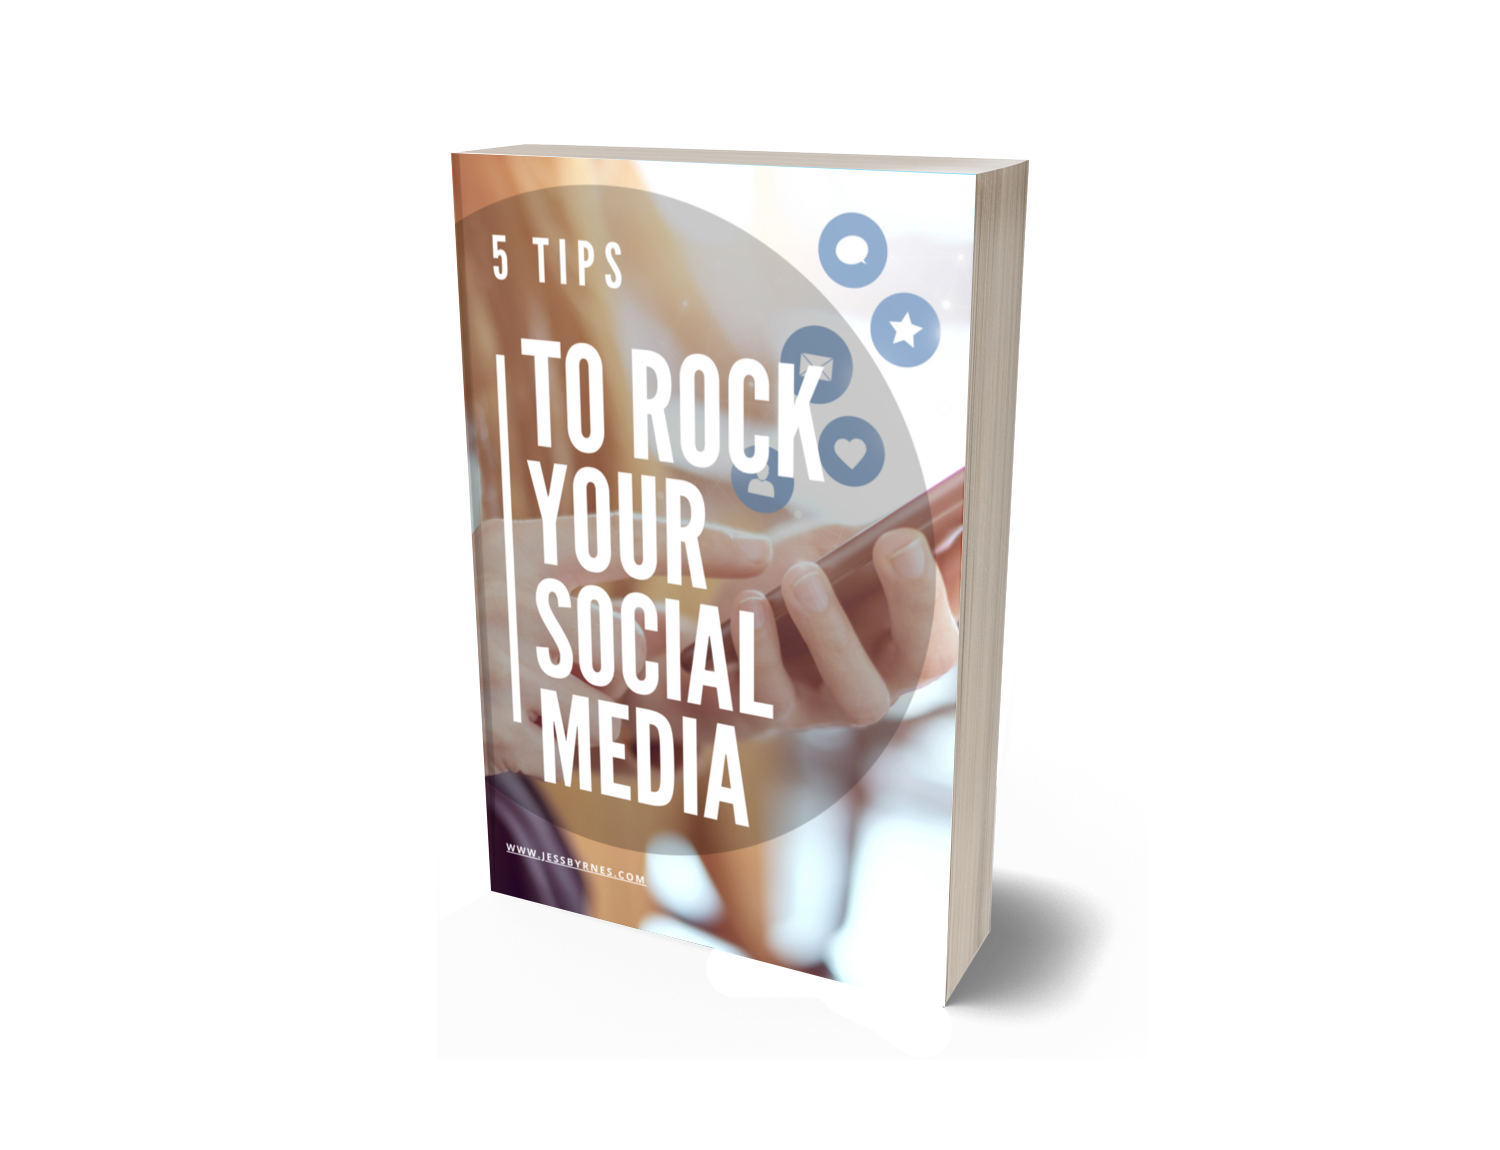 5 tips to rock your social media